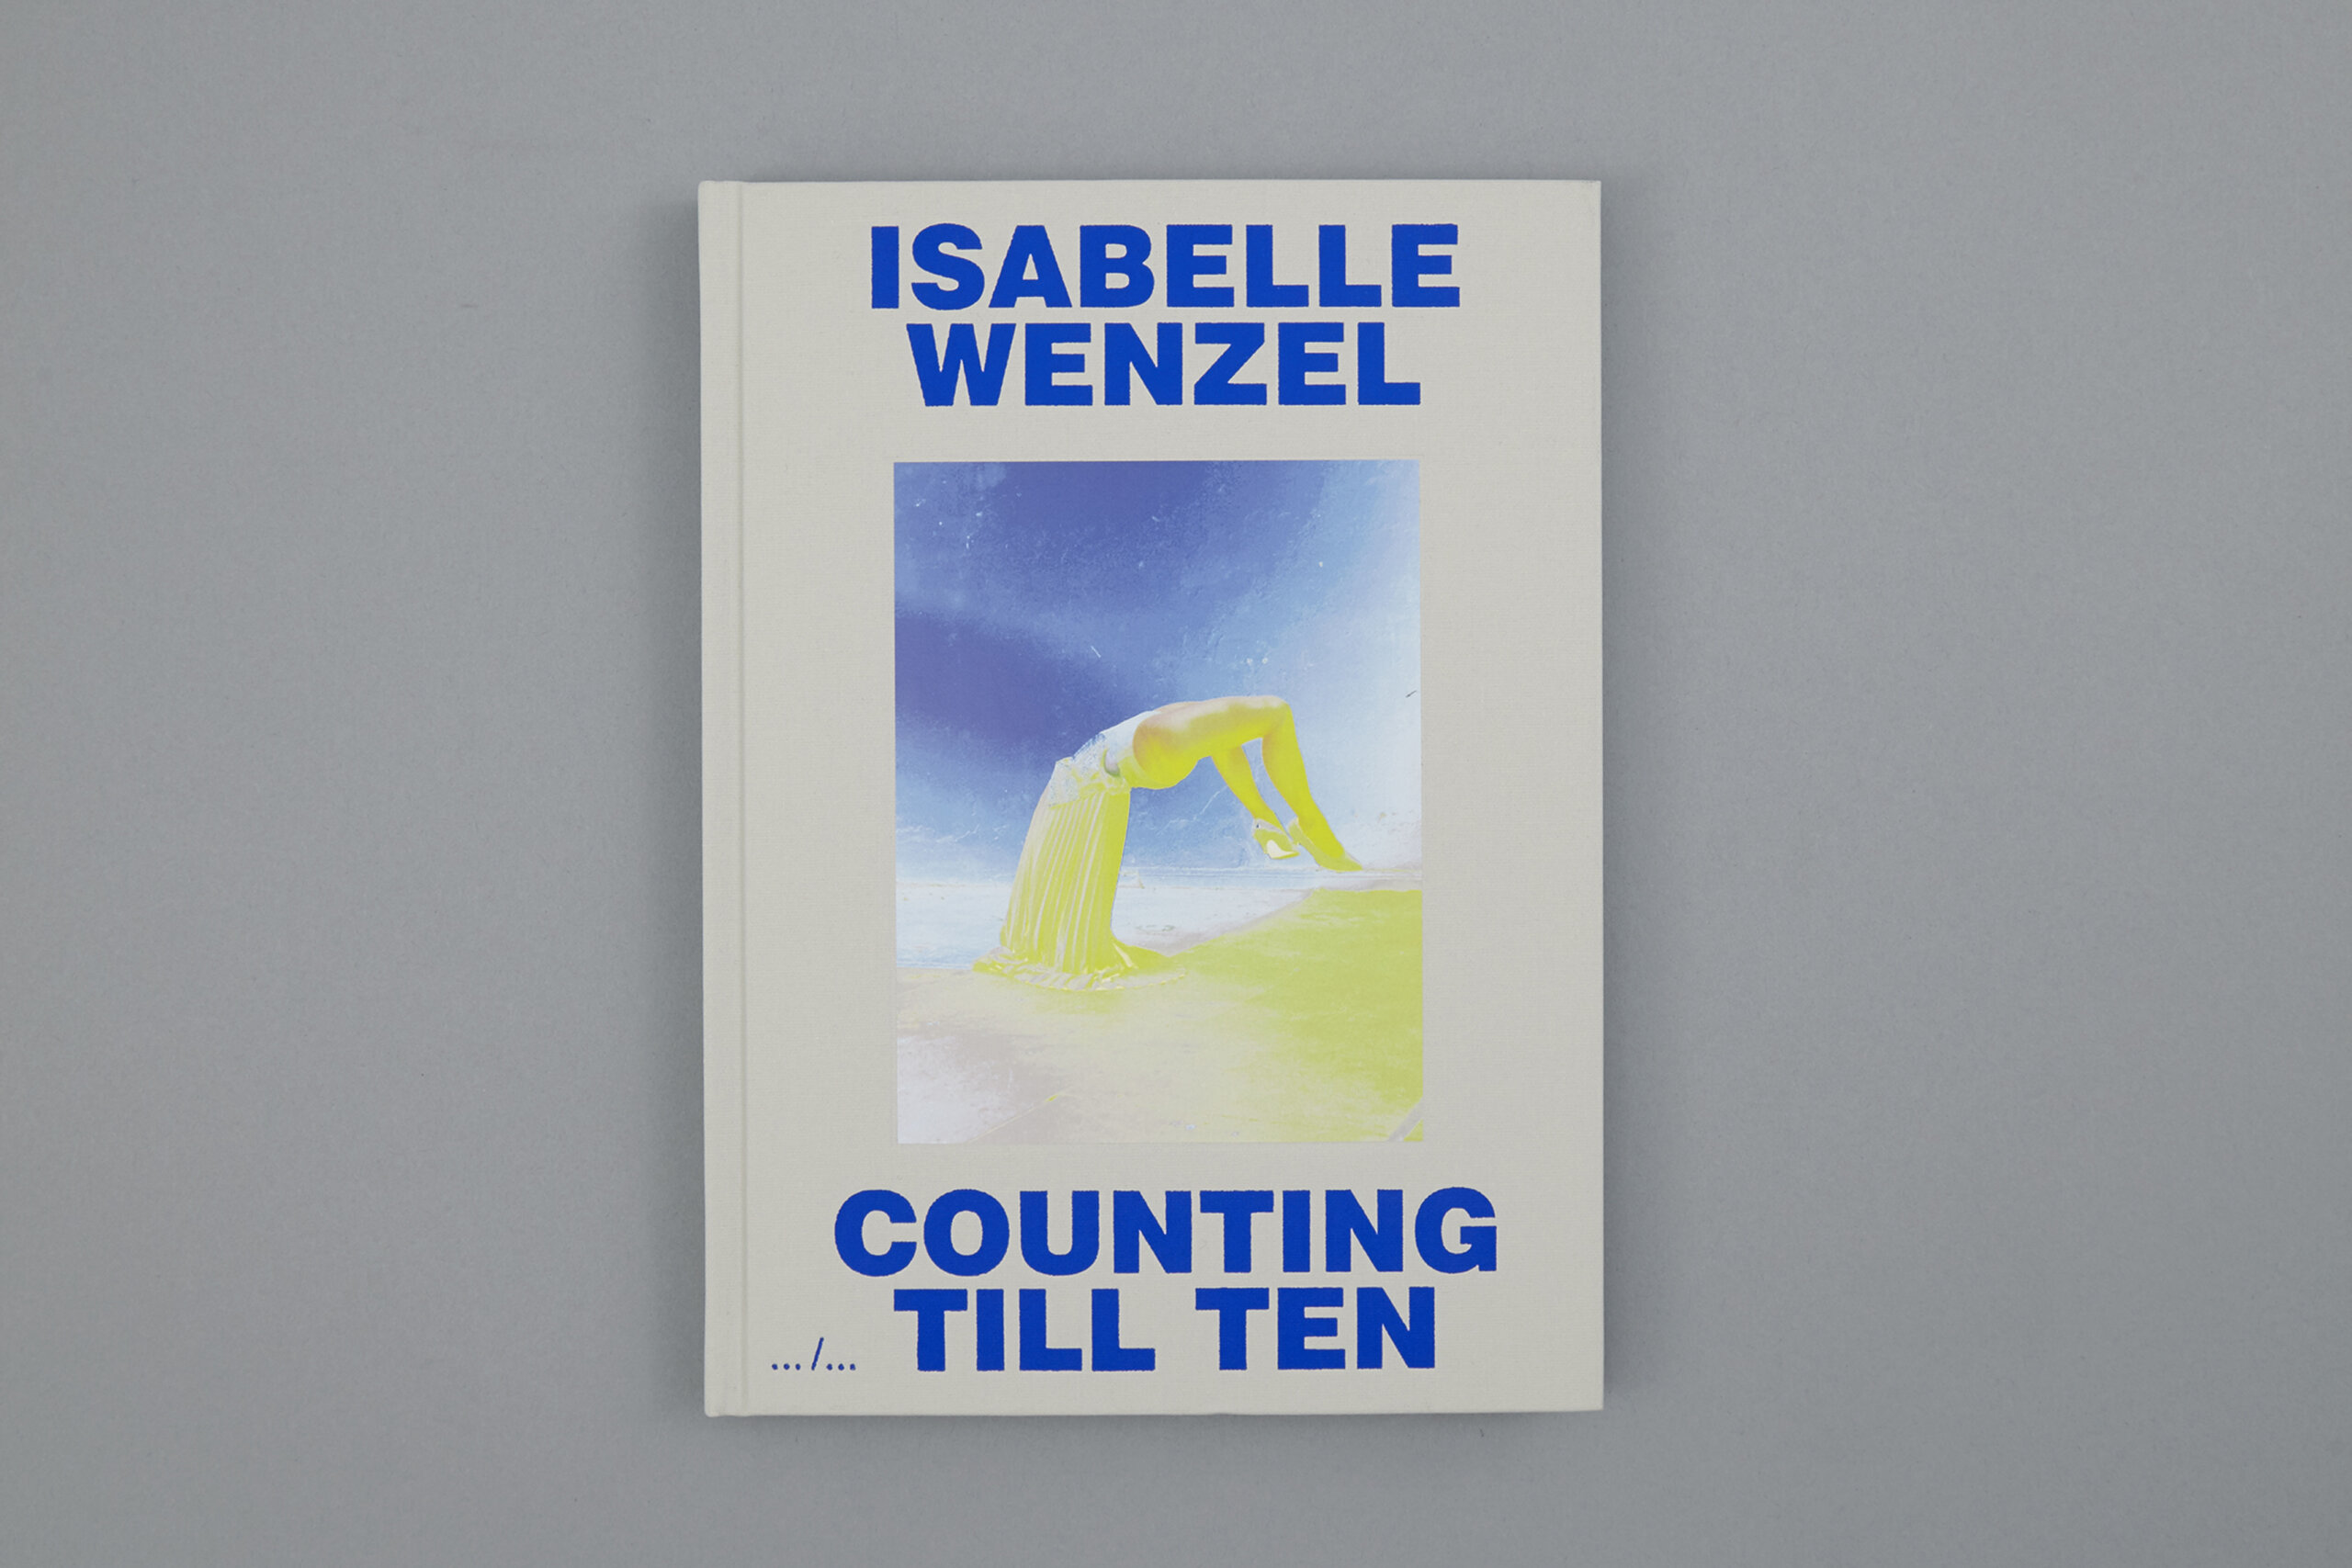 wenzel-counting-till-ten-delpire-co